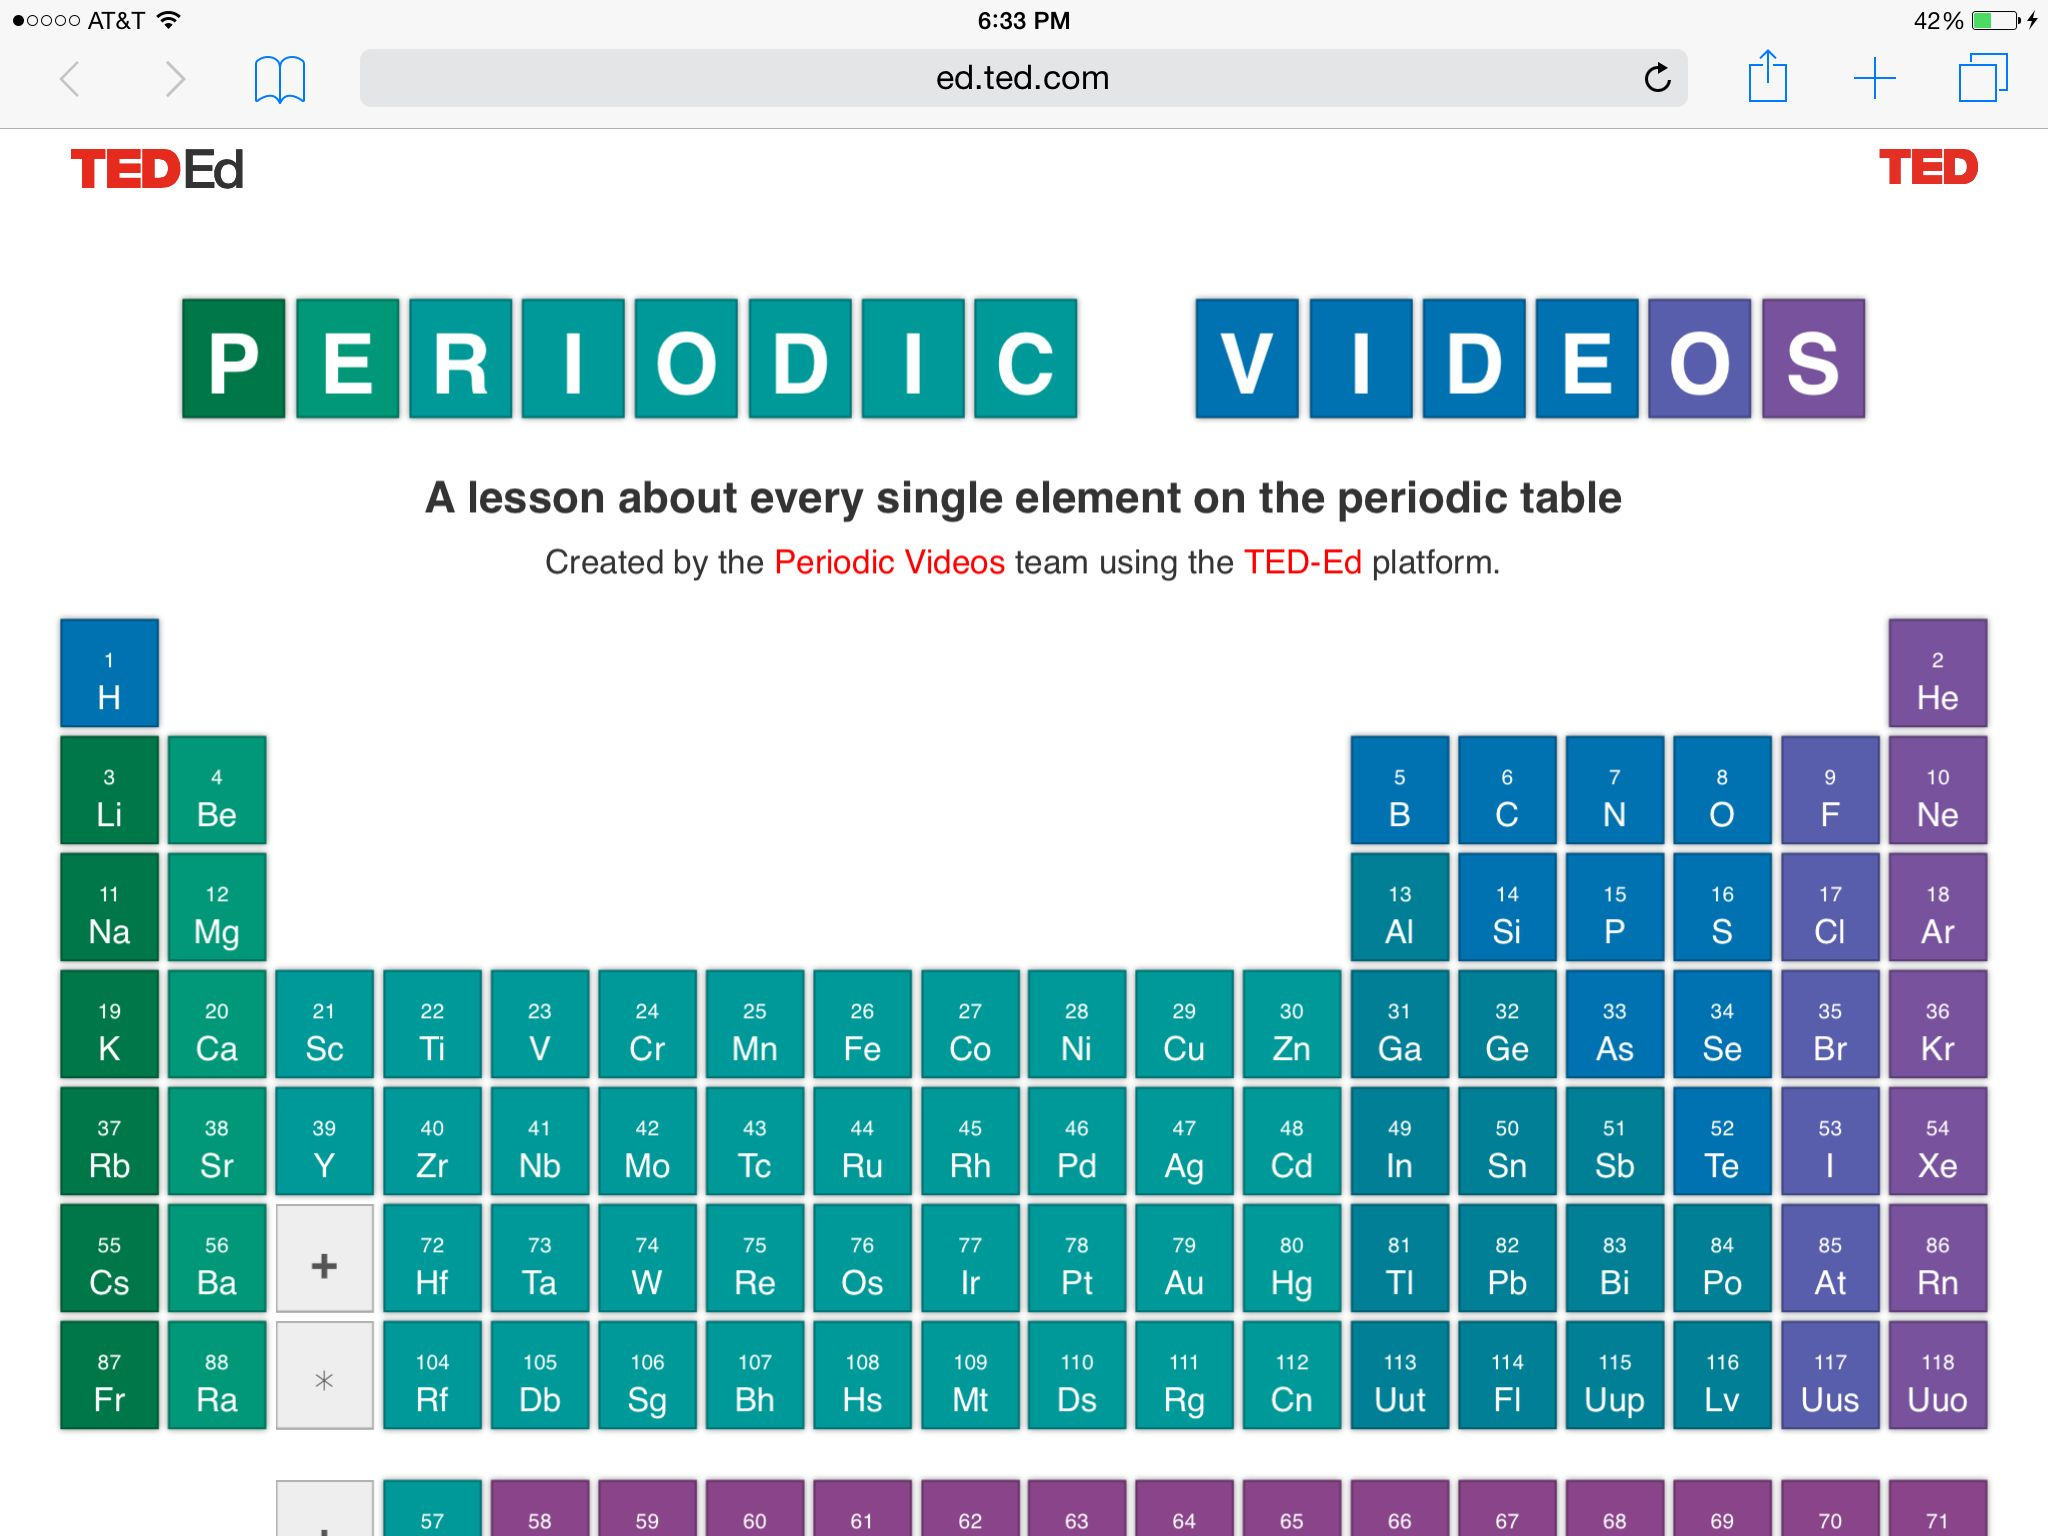 Httpedtedperiodic videos ted ed videos for elements on periodic videos a lesson about every single element on the periodic table created by the periodic videos team using the ted ed platform gamestrikefo Gallery